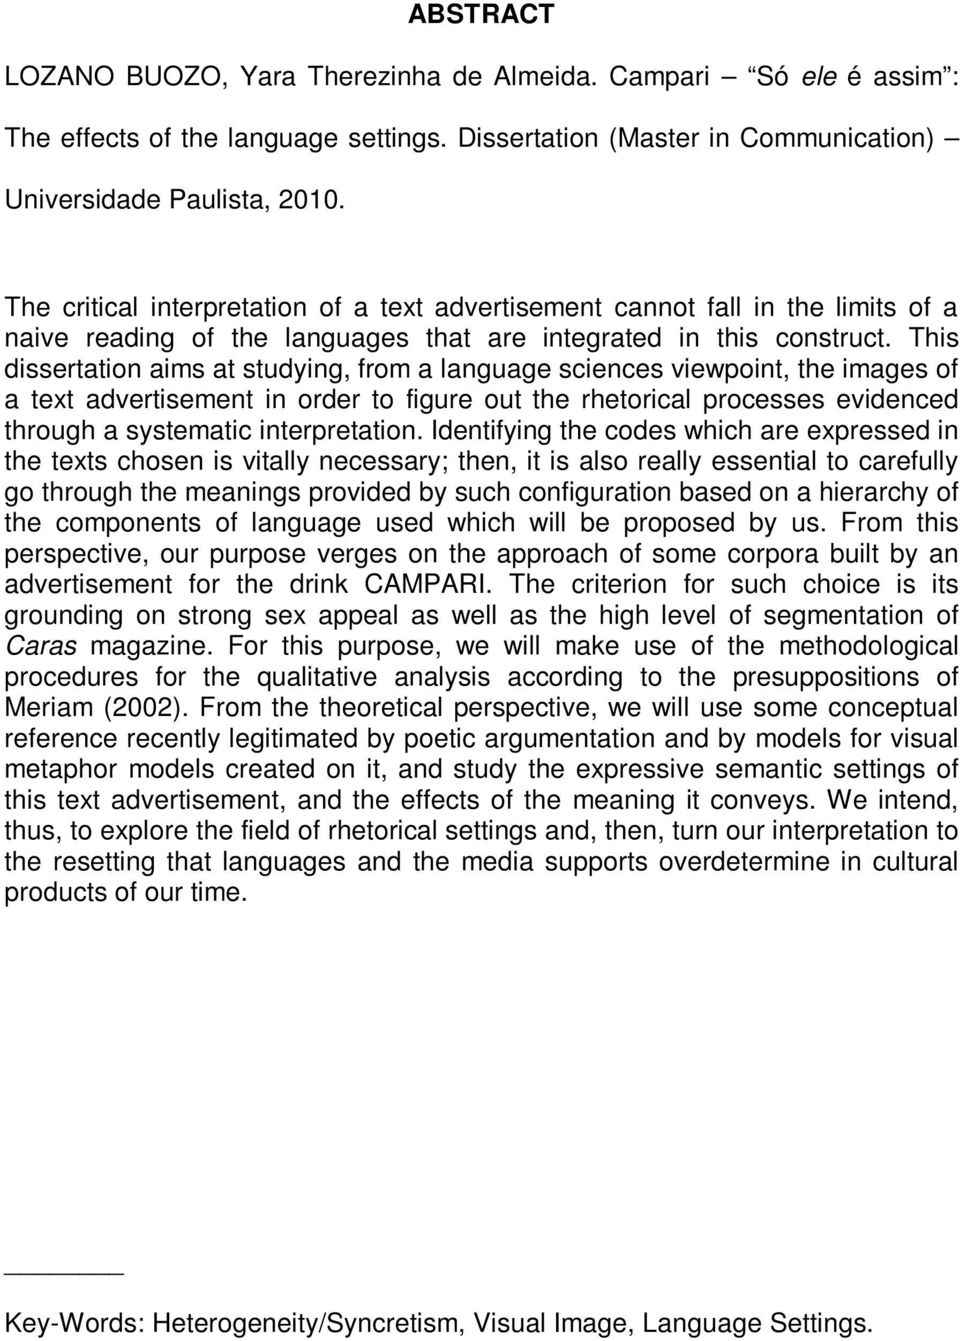 This dissertation aims at studying, from a language sciences viewpoint, the images of a text advertisement in order to figure out the rhetorical processes evidenced through a systematic